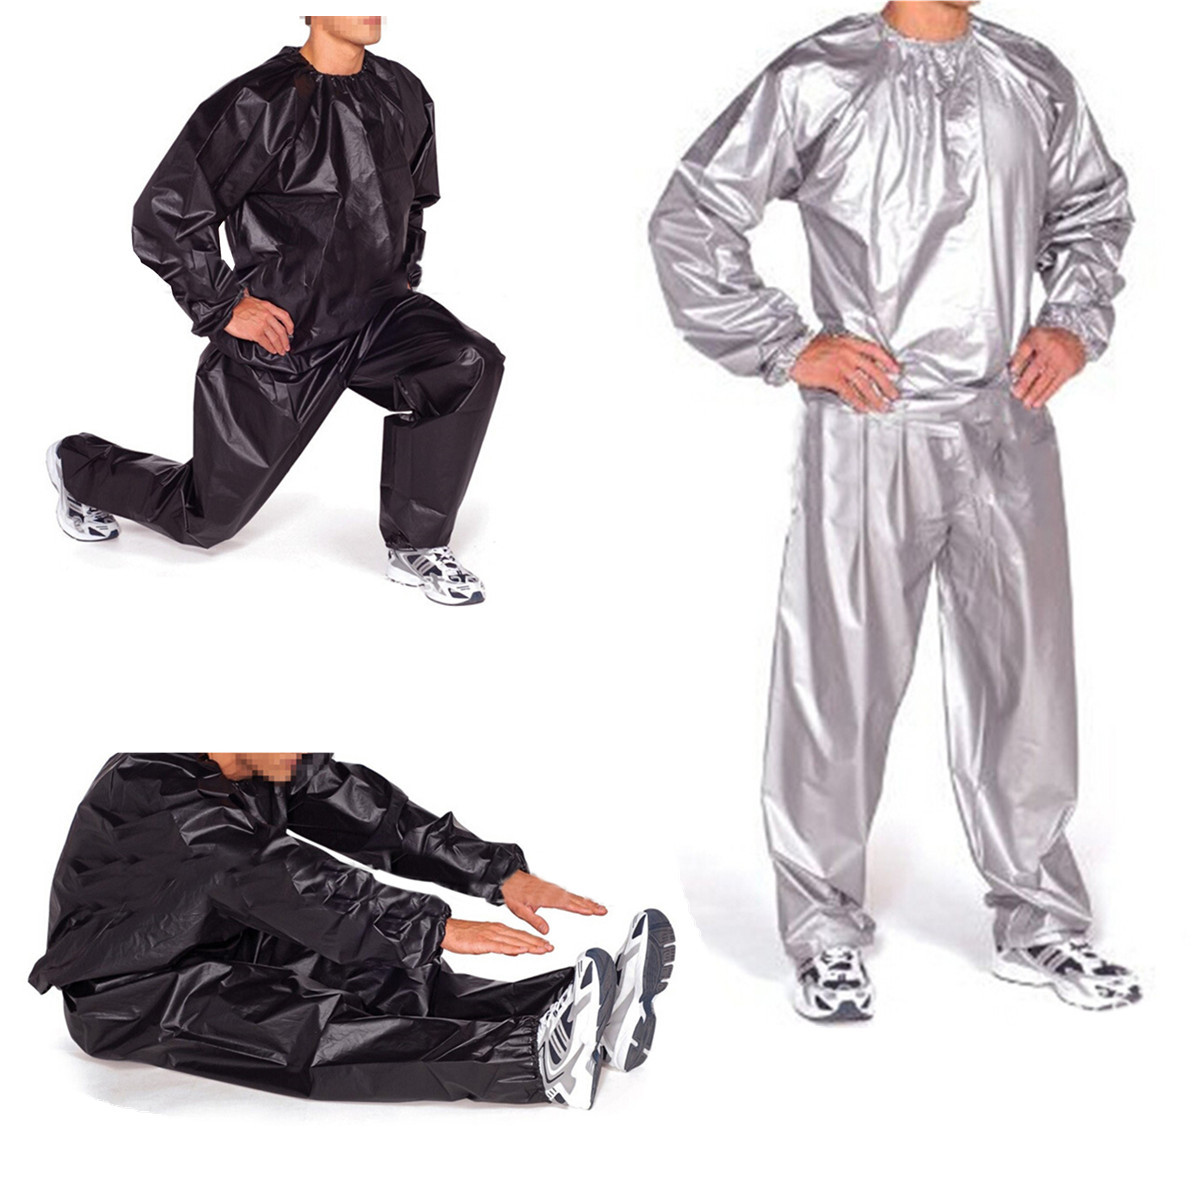 100% PVC Heavy Duty Unisex Fitness Loss Weight Sweat Suit Sauna Yoga Stretch Workout Suit Exercise Gym Size:L-4XL